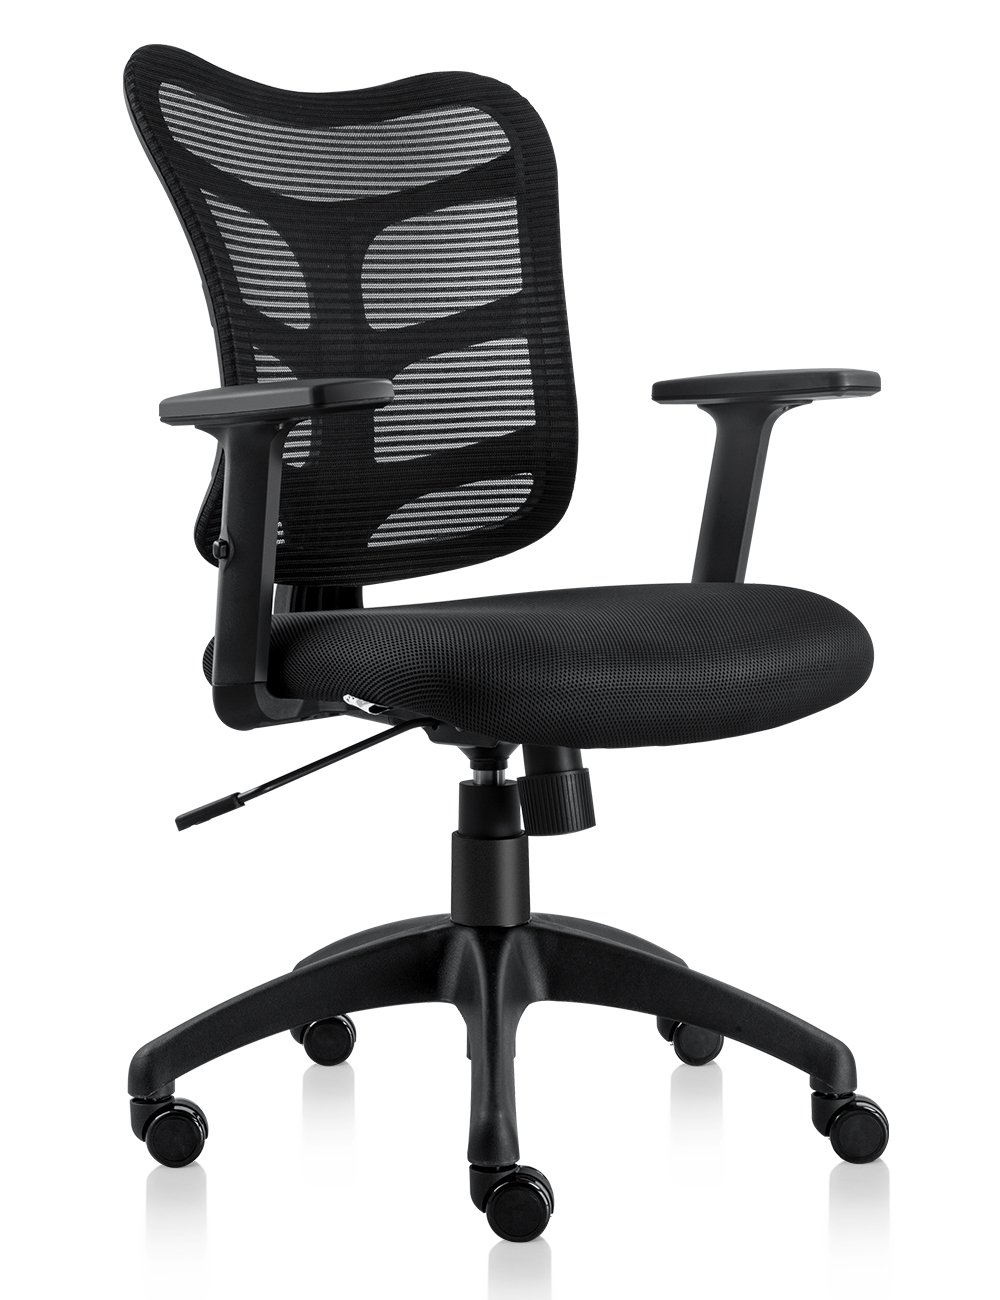 NKV Mid Back Office Chair Ergonomic Task Mesh Chair Adjustable Computer Desk Chair(Black)